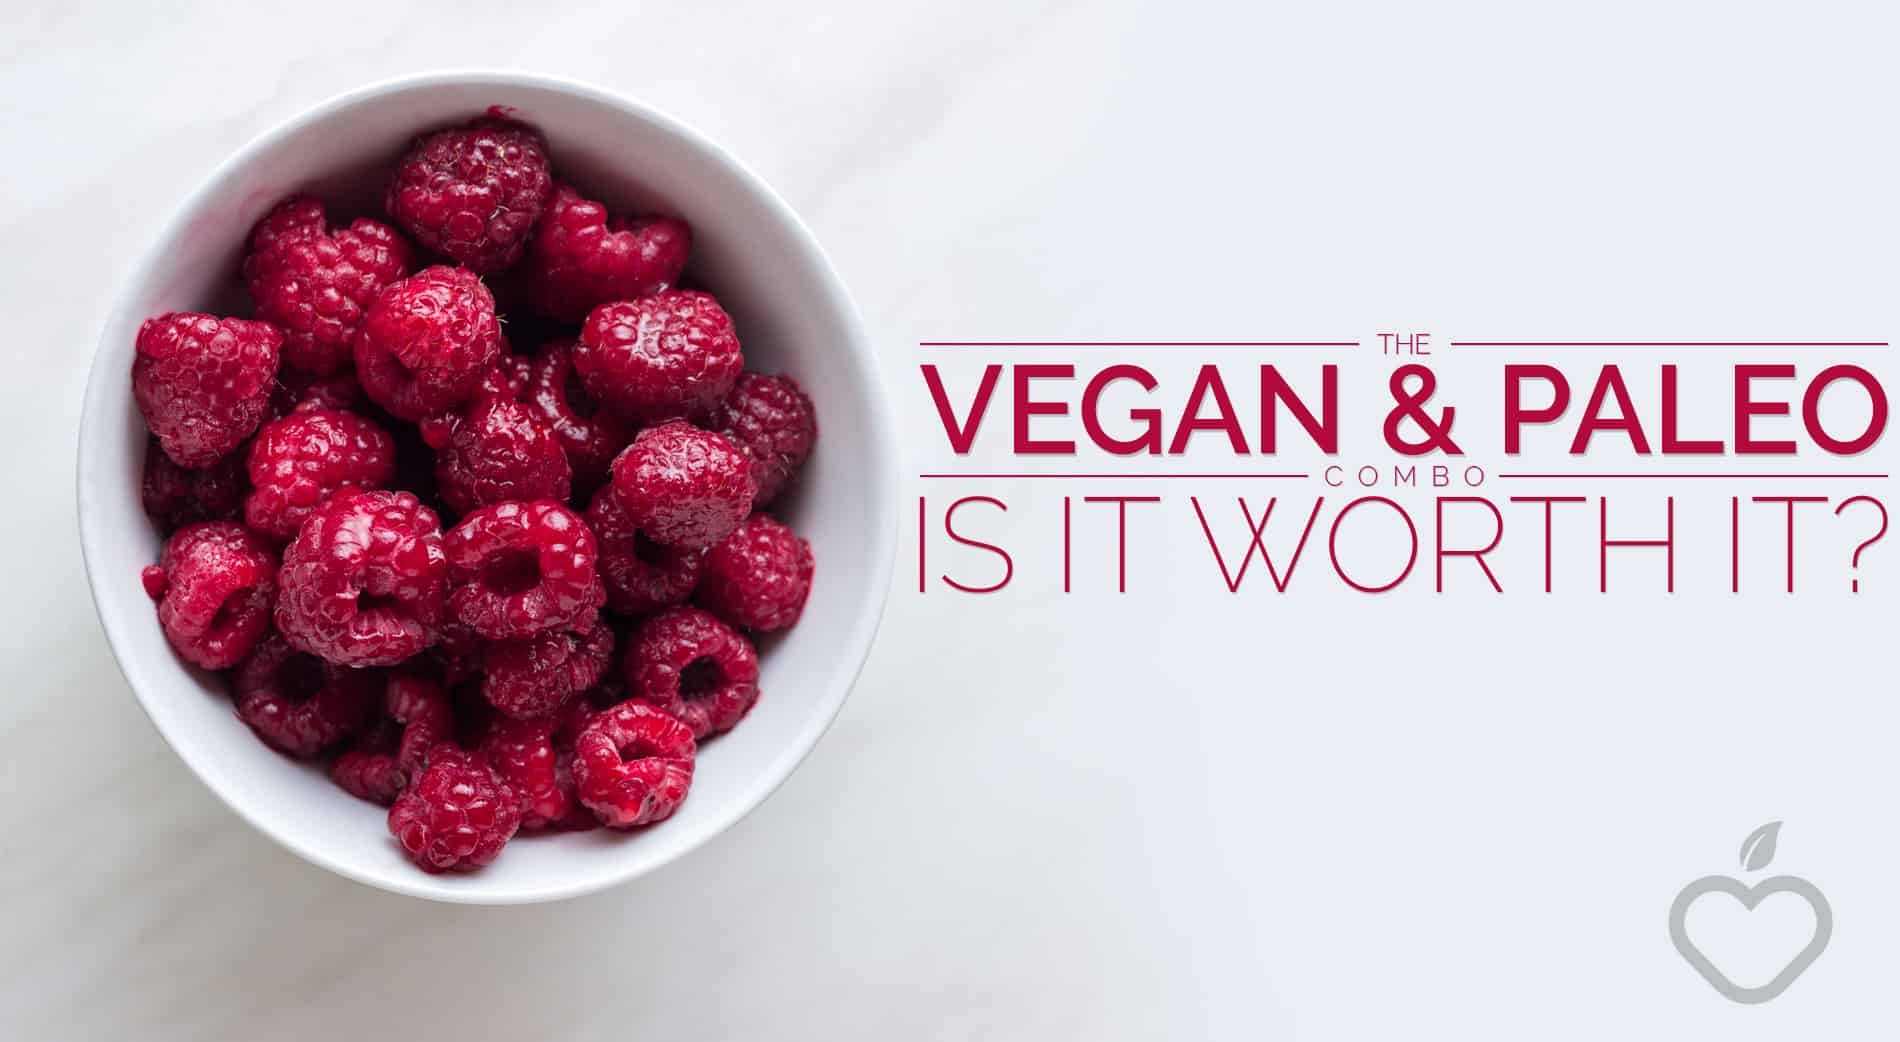 Vegan And Paleo Combo Image Design 1 - The Vegan and Paleo Combo – Is It Worth It?